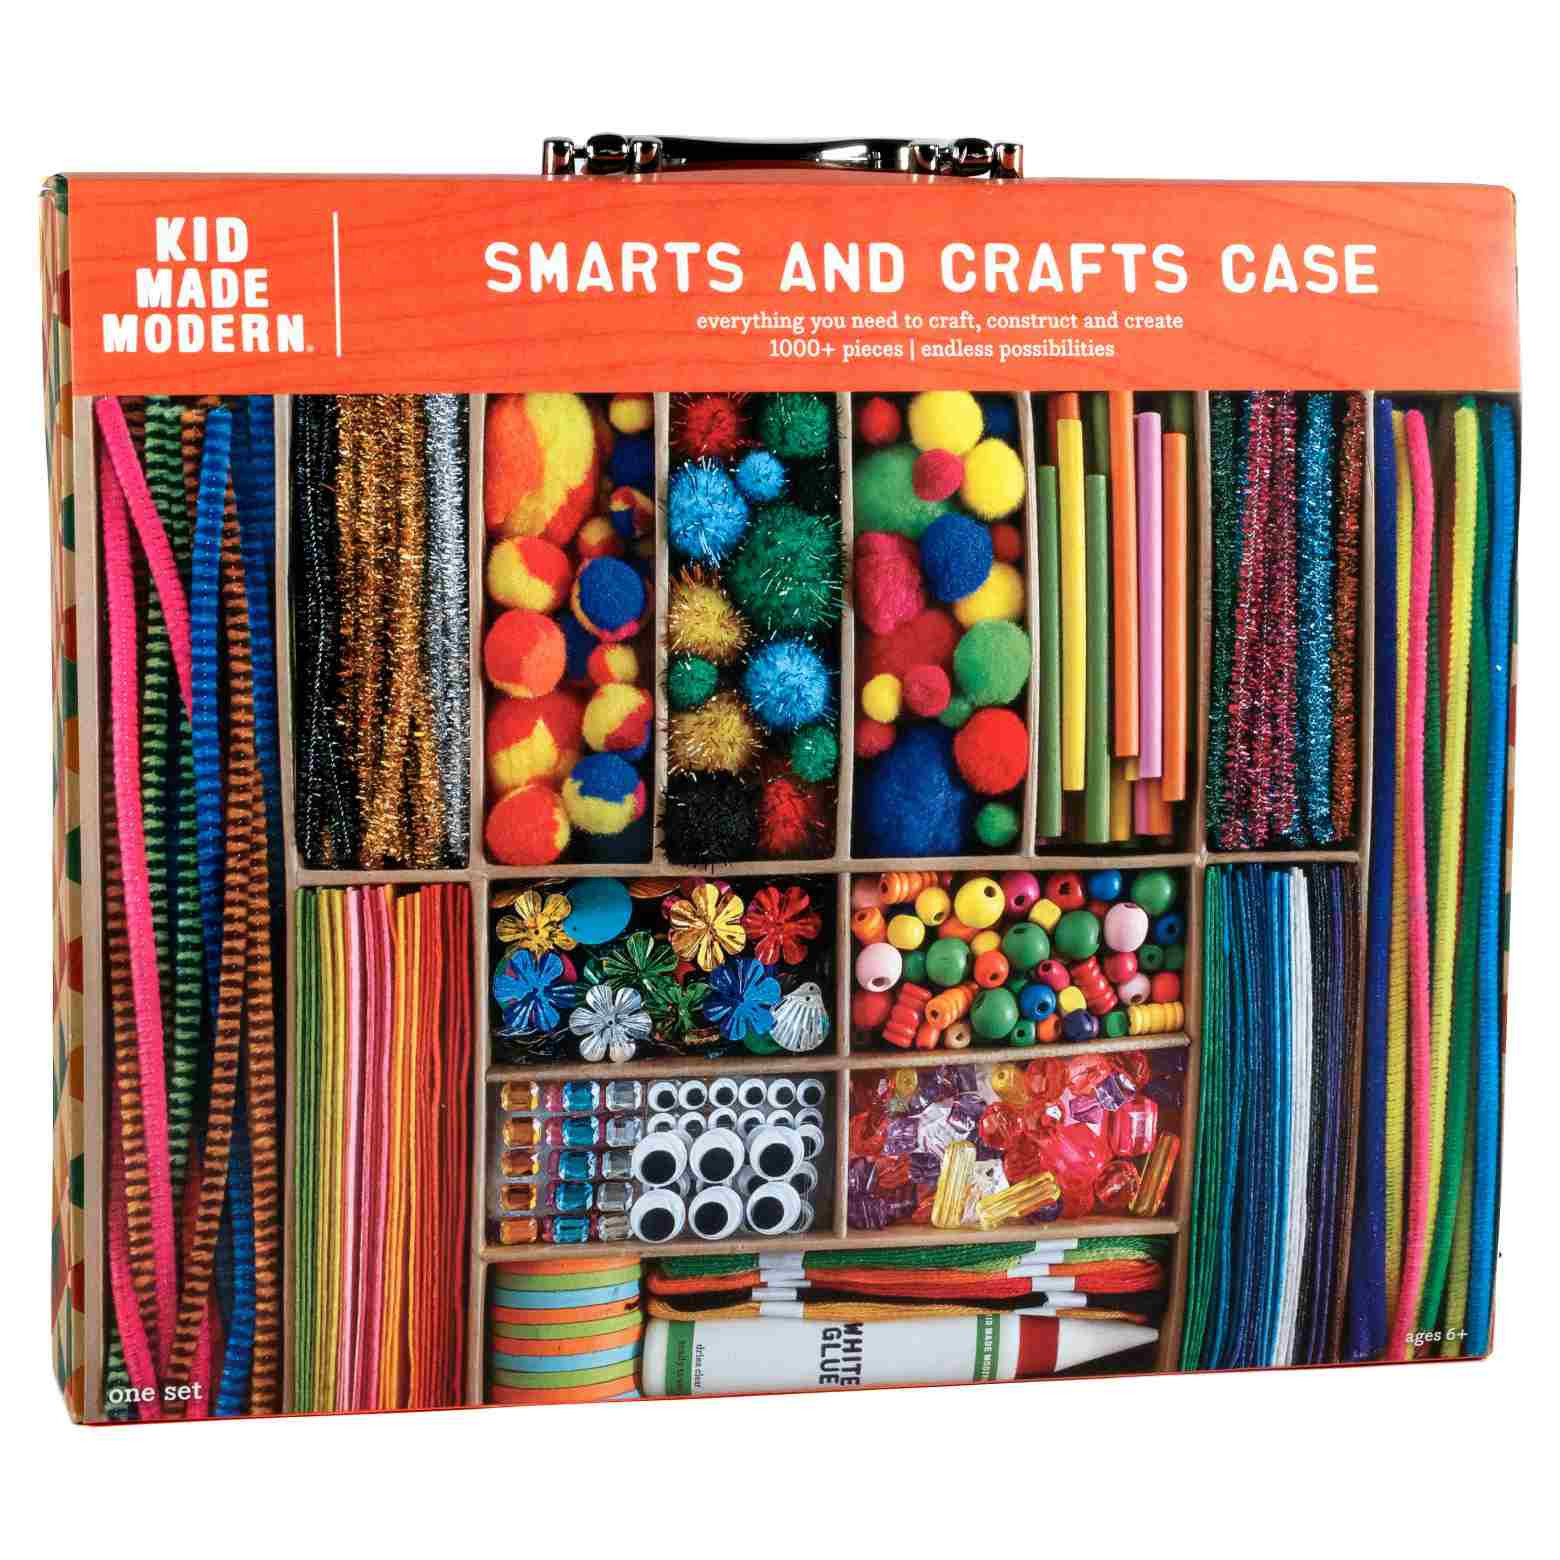 Arts And Crafts Sets For Kids  The 9 Best Craft Kits for Kids in 2020